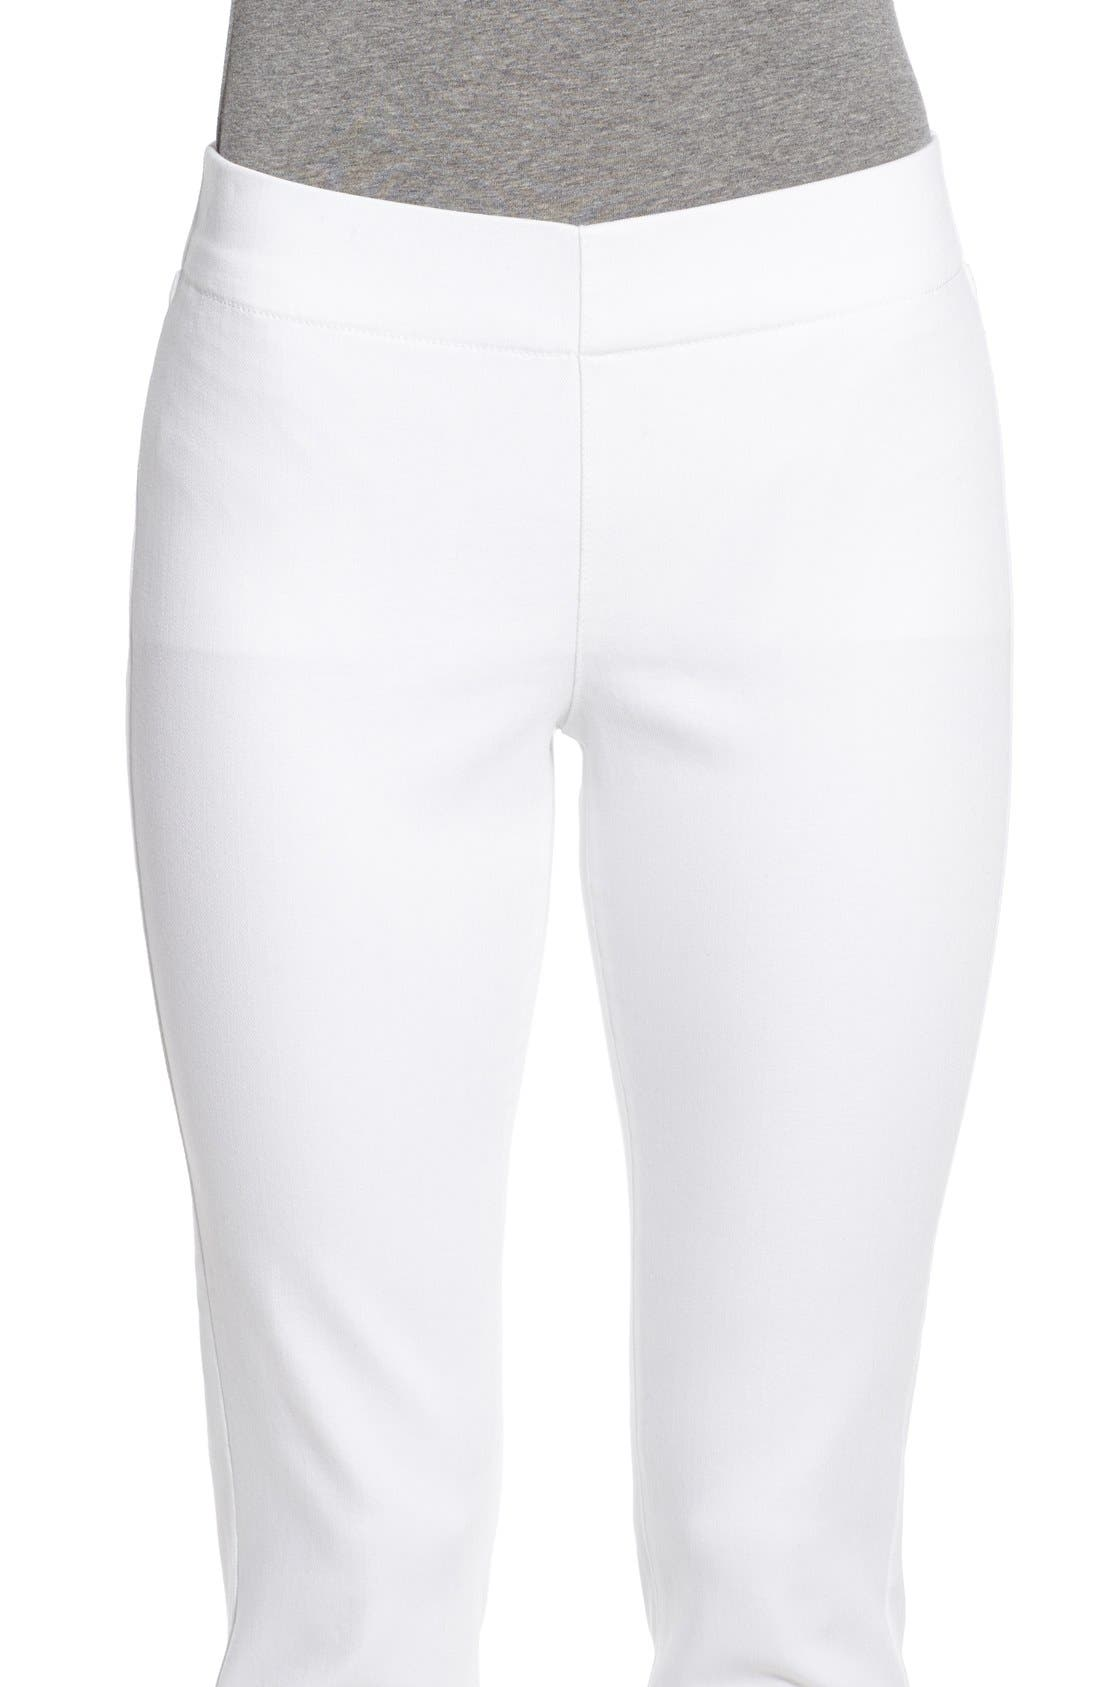 'Millie' Pull-On Stretch Ankle Skinny Jeans,                             Alternate thumbnail 4, color,                             198